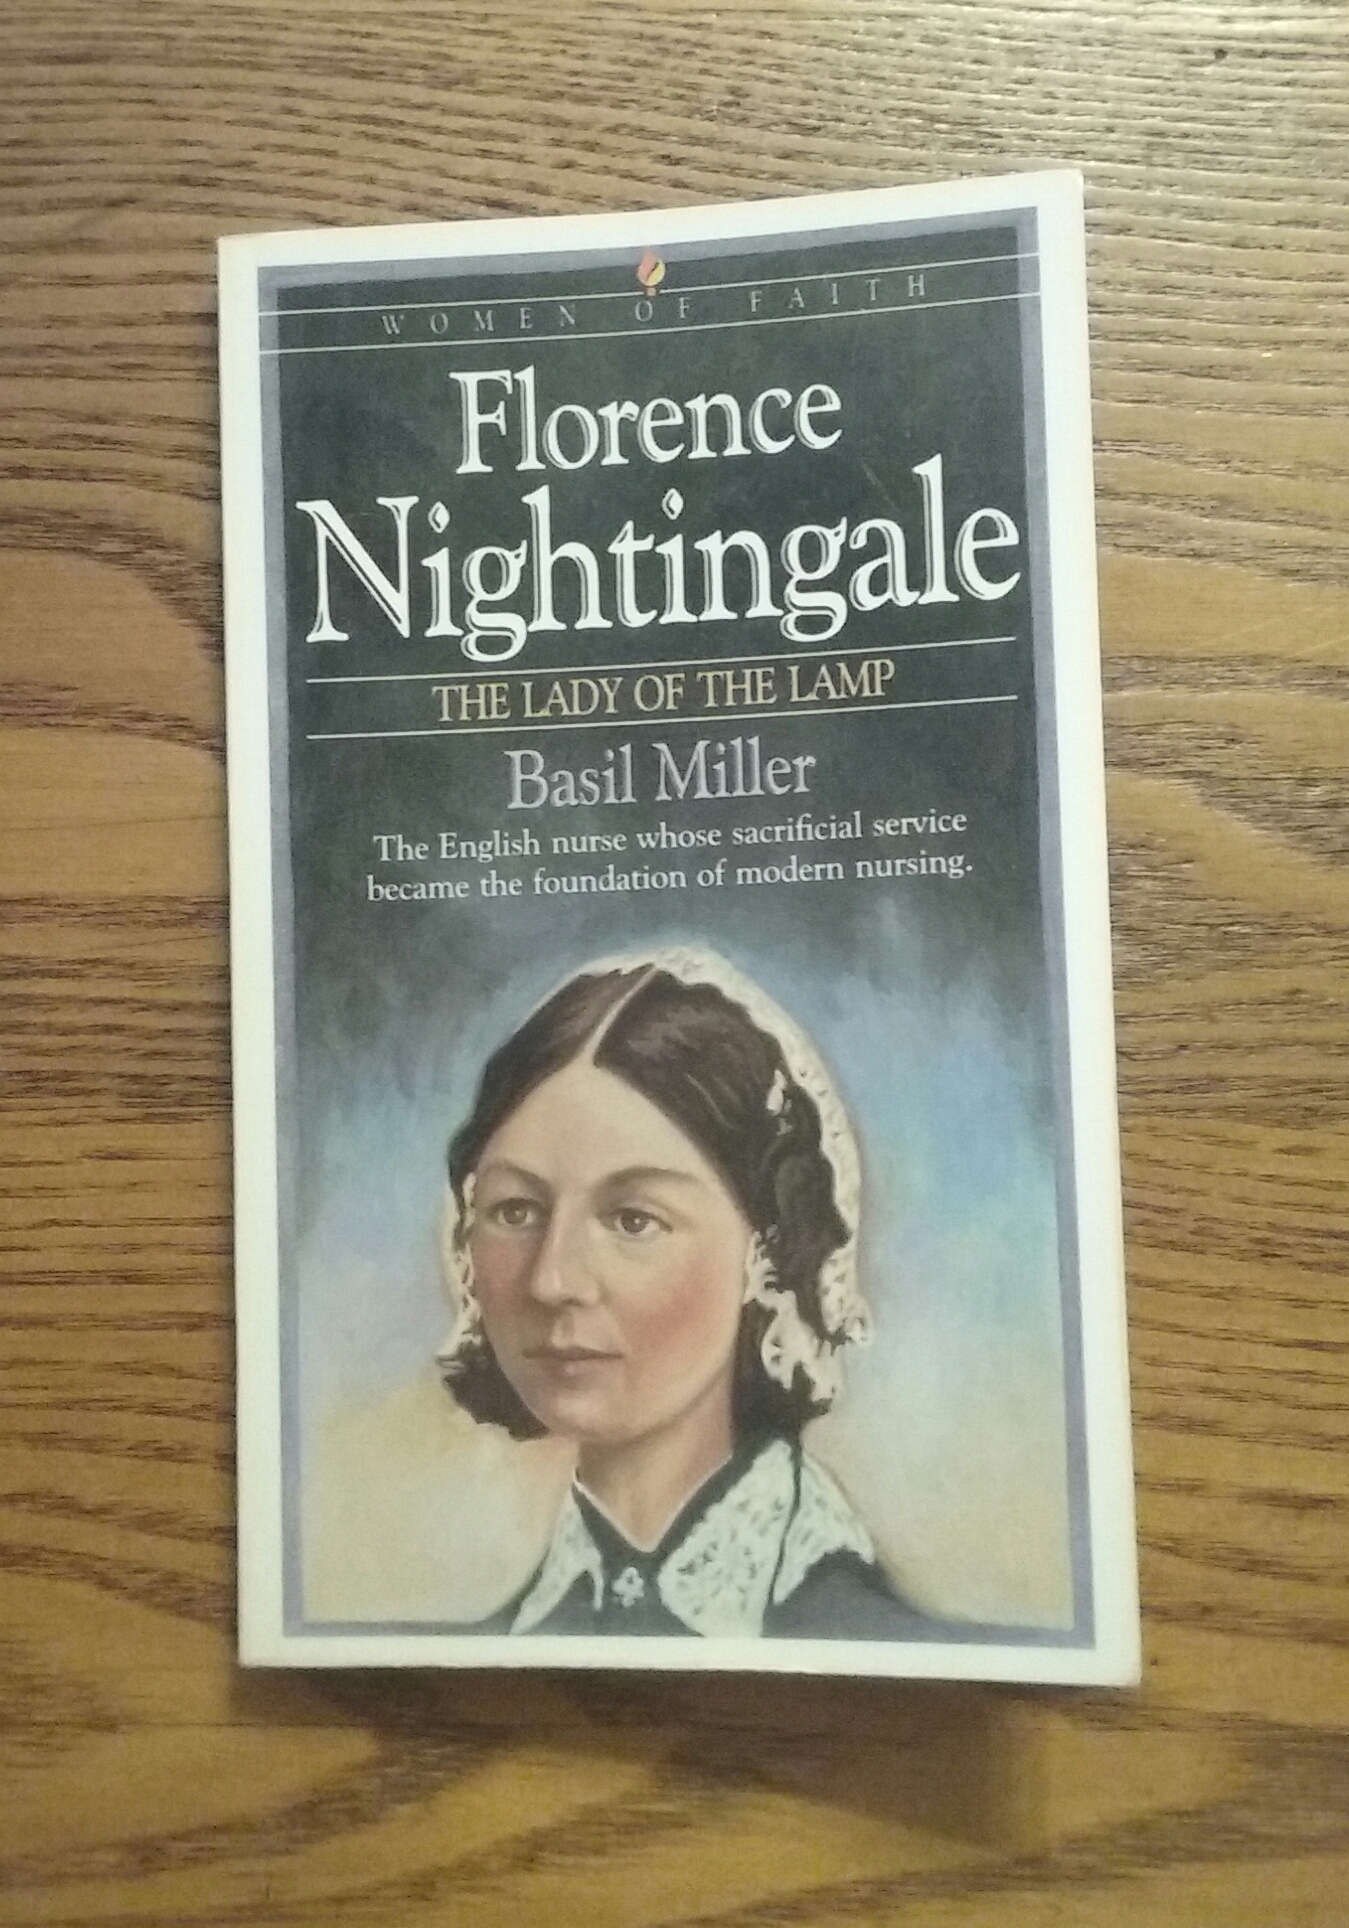 florence nightingale biography essay Florence nightingale florence nightingale was a legend in her lifetime and was one of the greatest pioneer's in nursing she lived ninety years and accomplished many great things for the field of nursing her descriptions of nursing, health, environment, and humankind are remarkable and still true to this day.